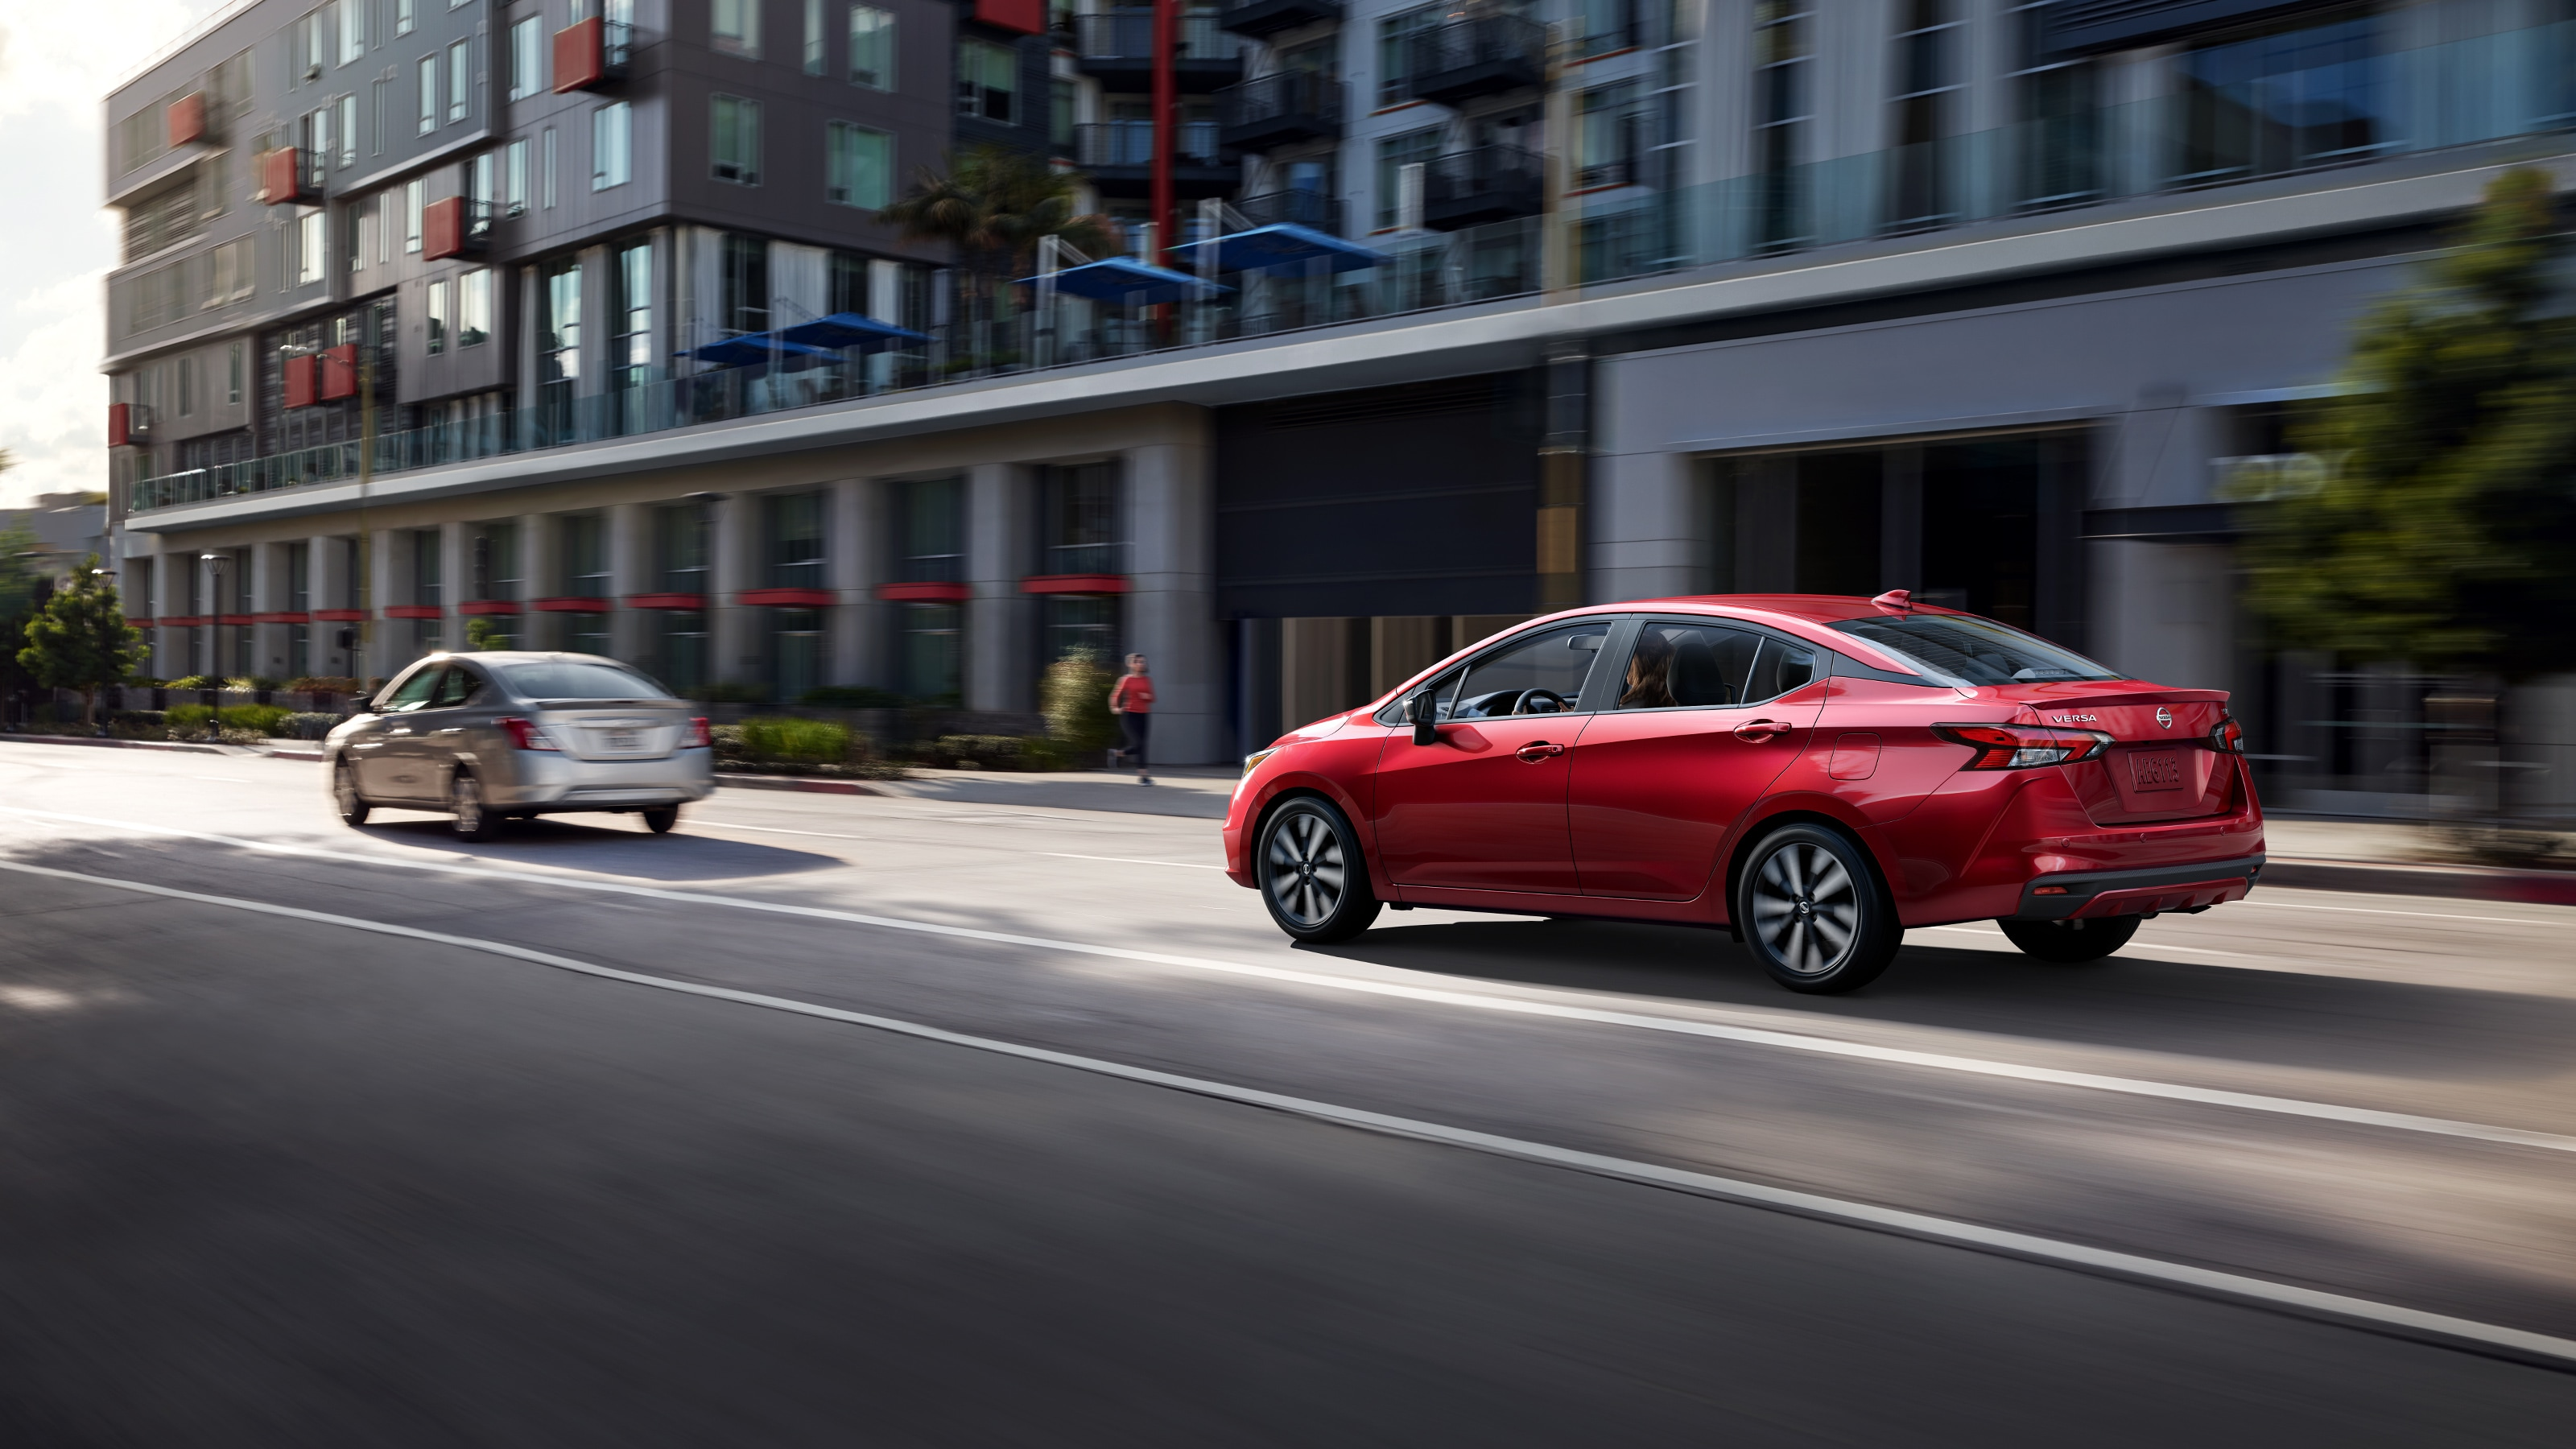 2020 Nissan Versa Rear Red Exterior Picture